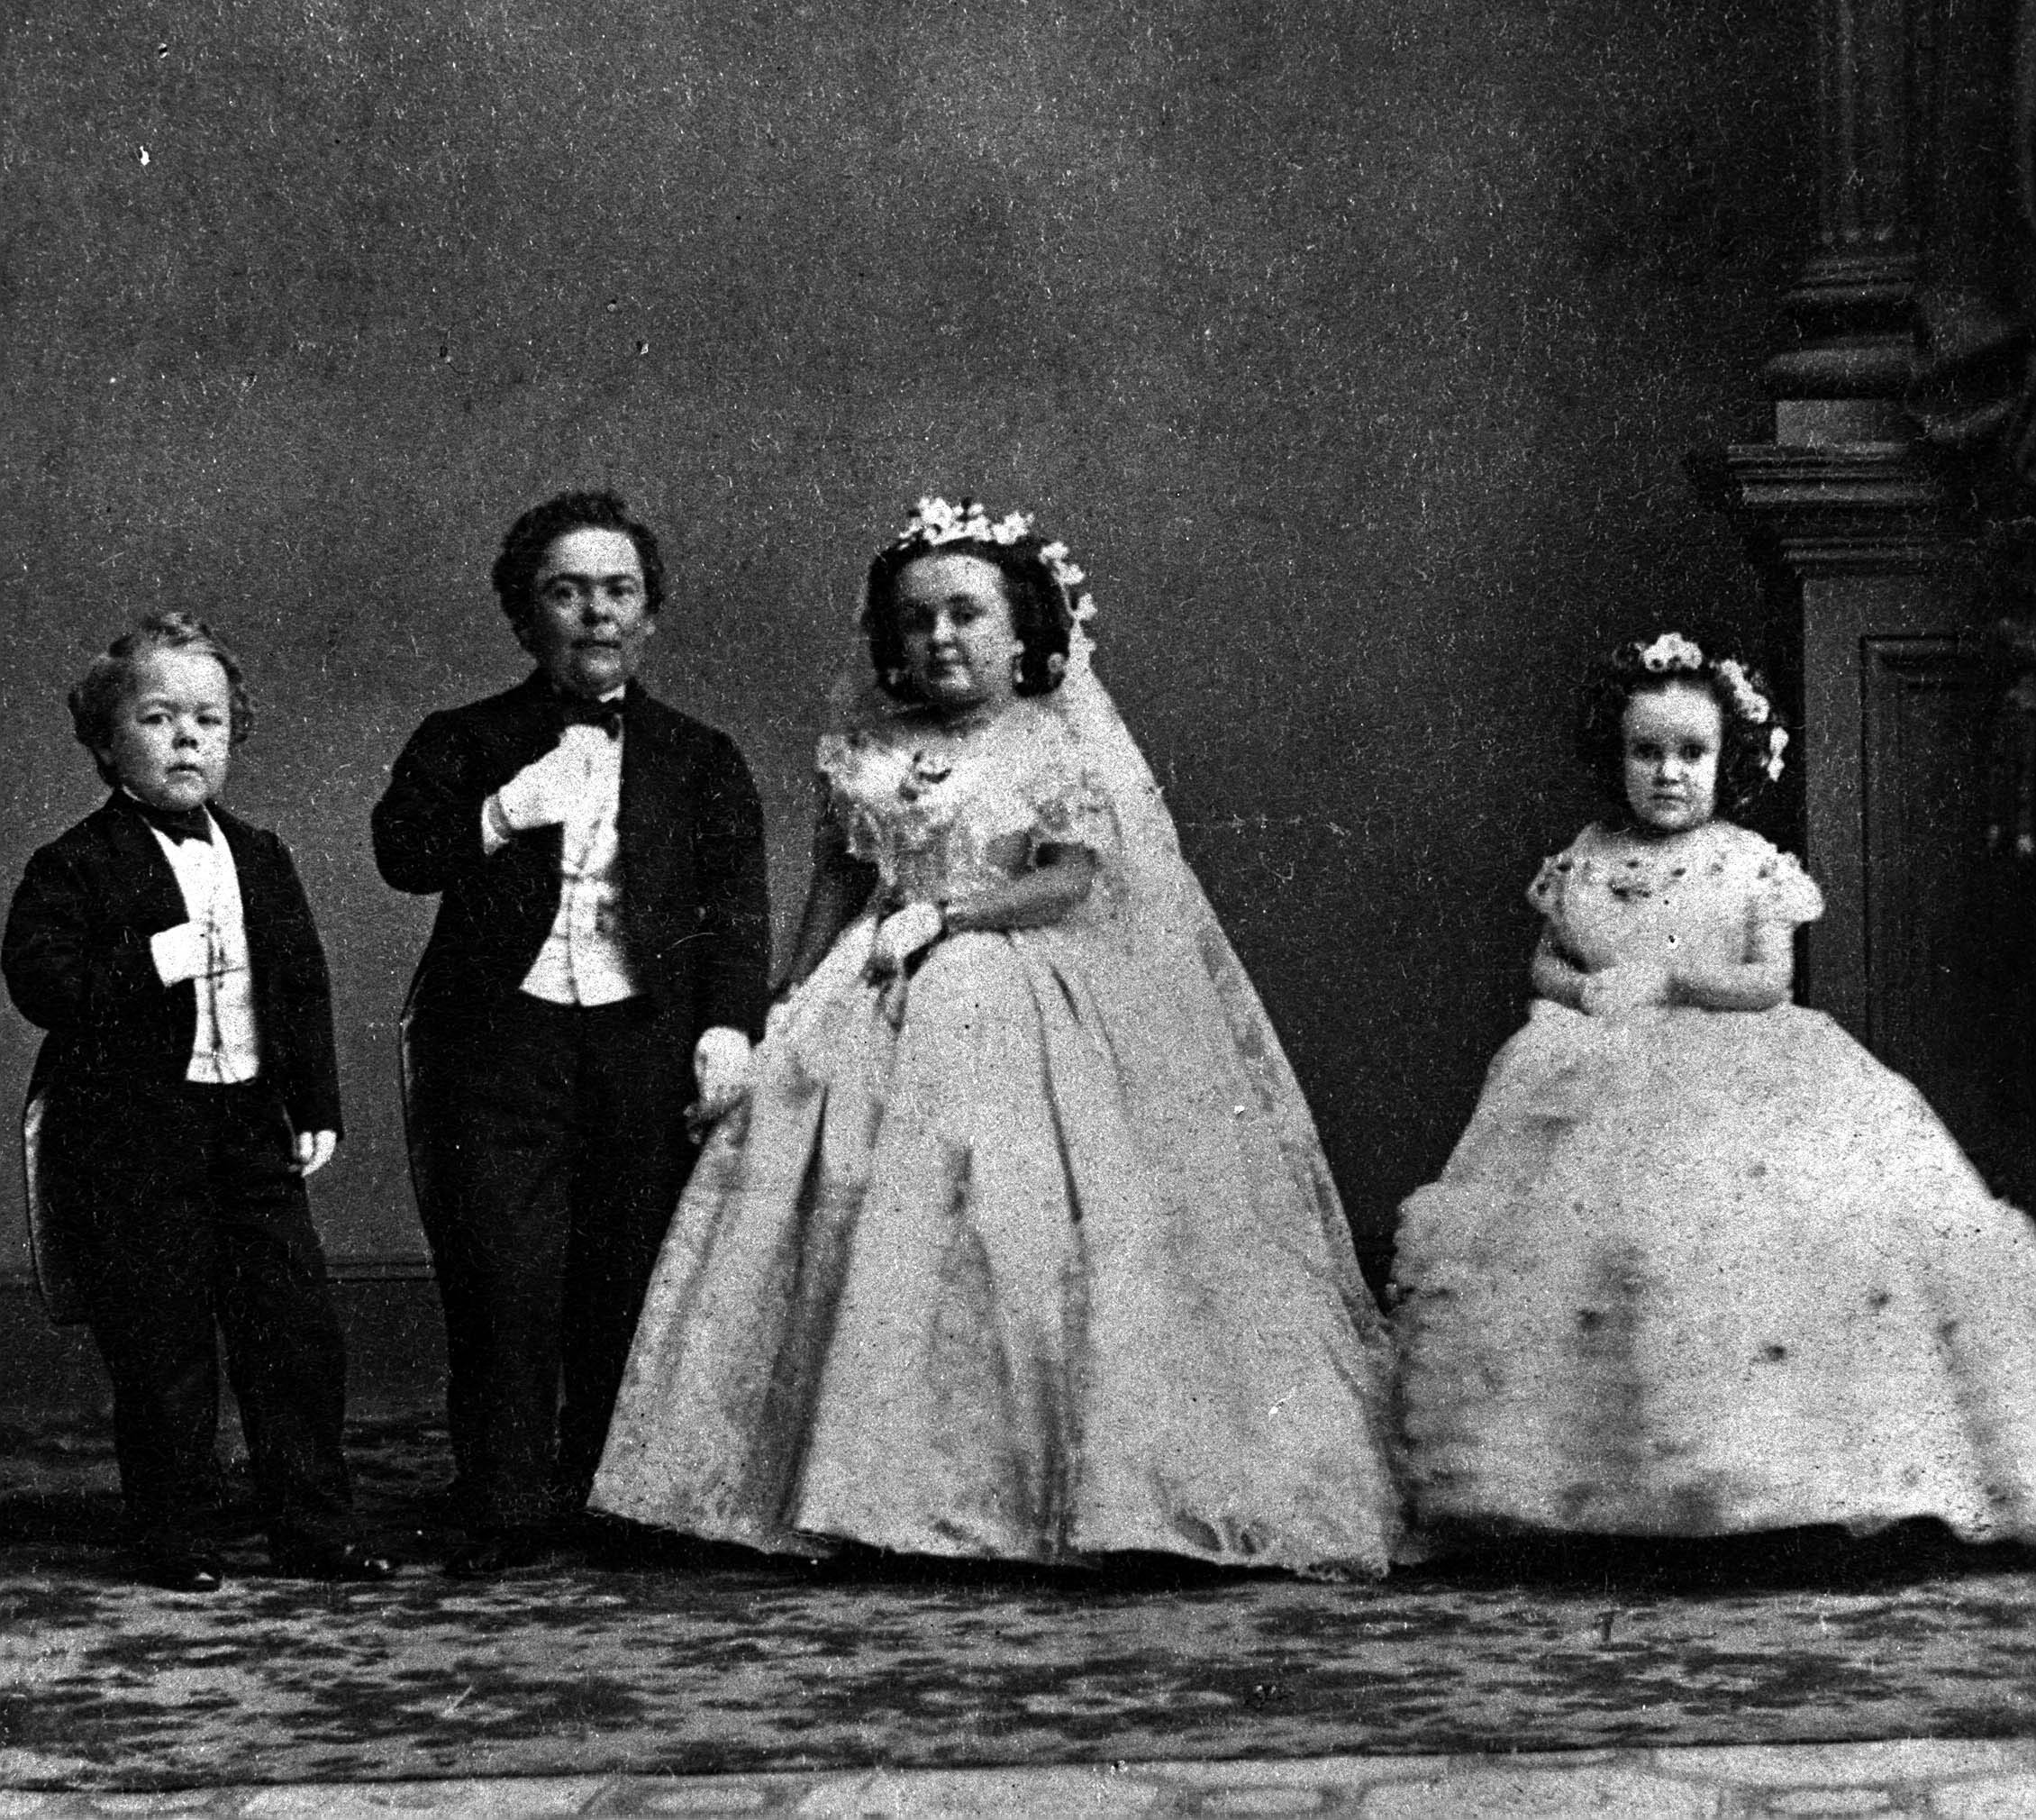 General Tom Thumb alias, Charles Sherwood Stratton, US midget showman,and his wife in 1869.